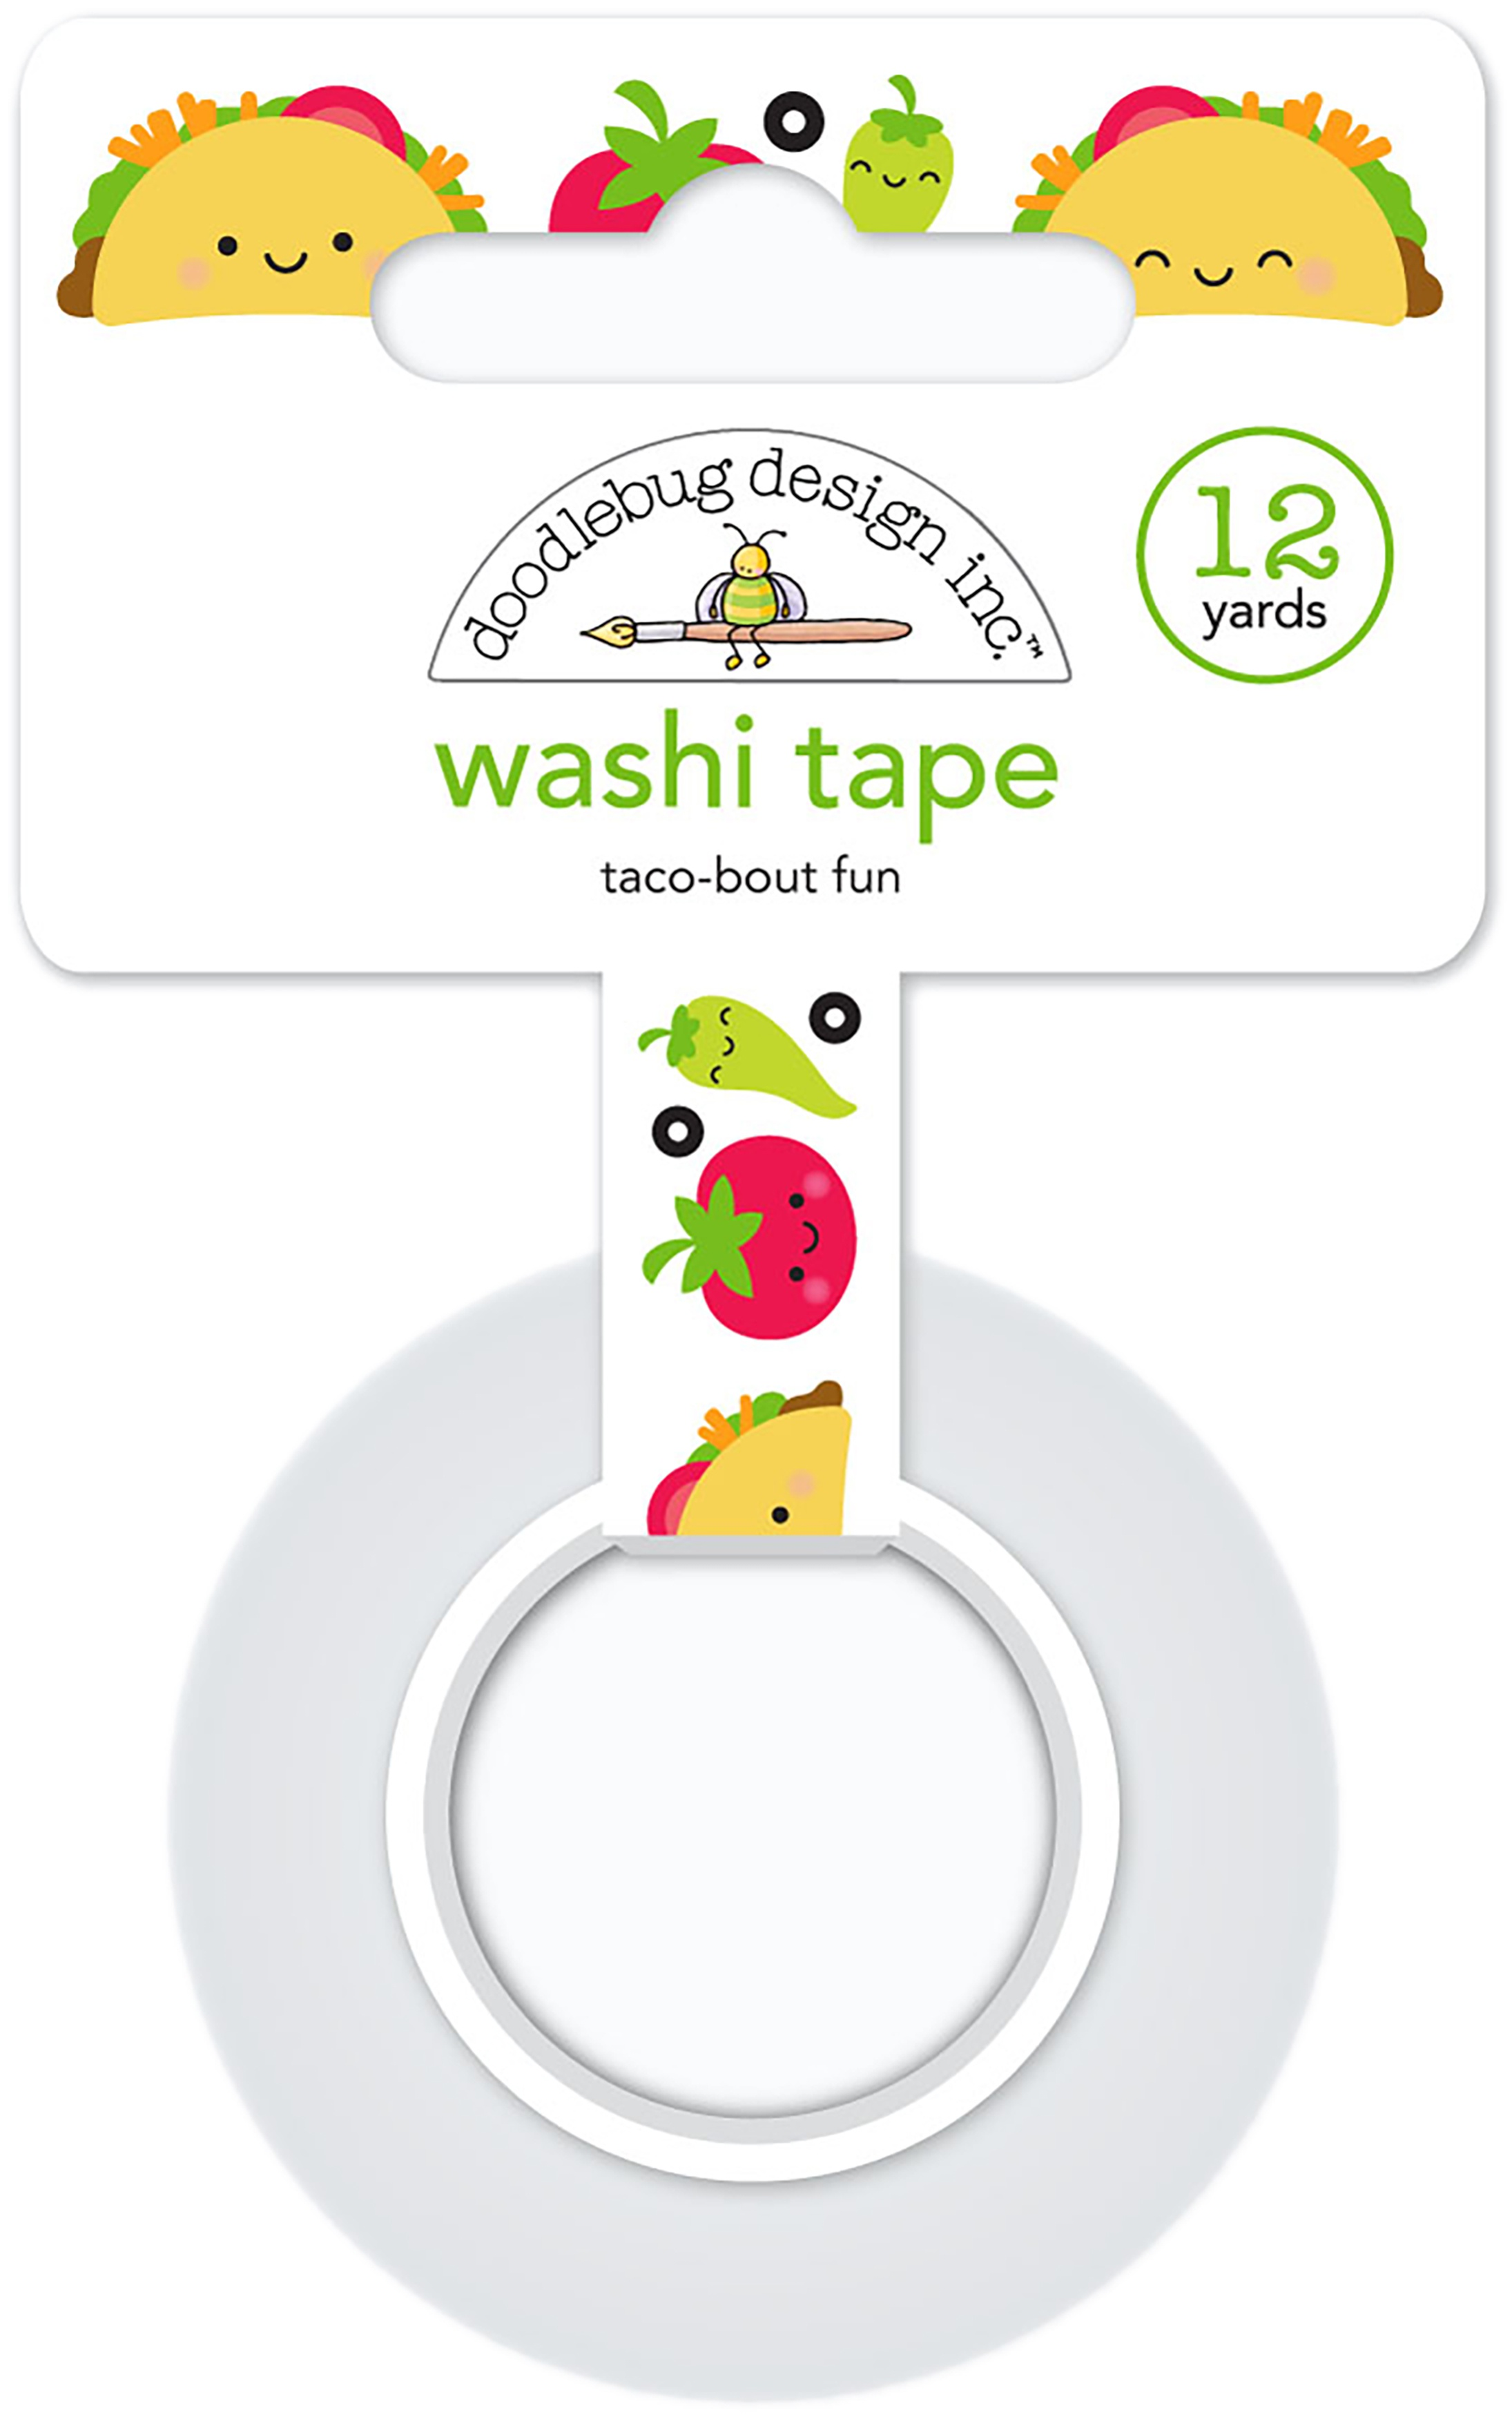 EMB - SO MUCH PUN WASHI TAPE TACO-BOUT FUN